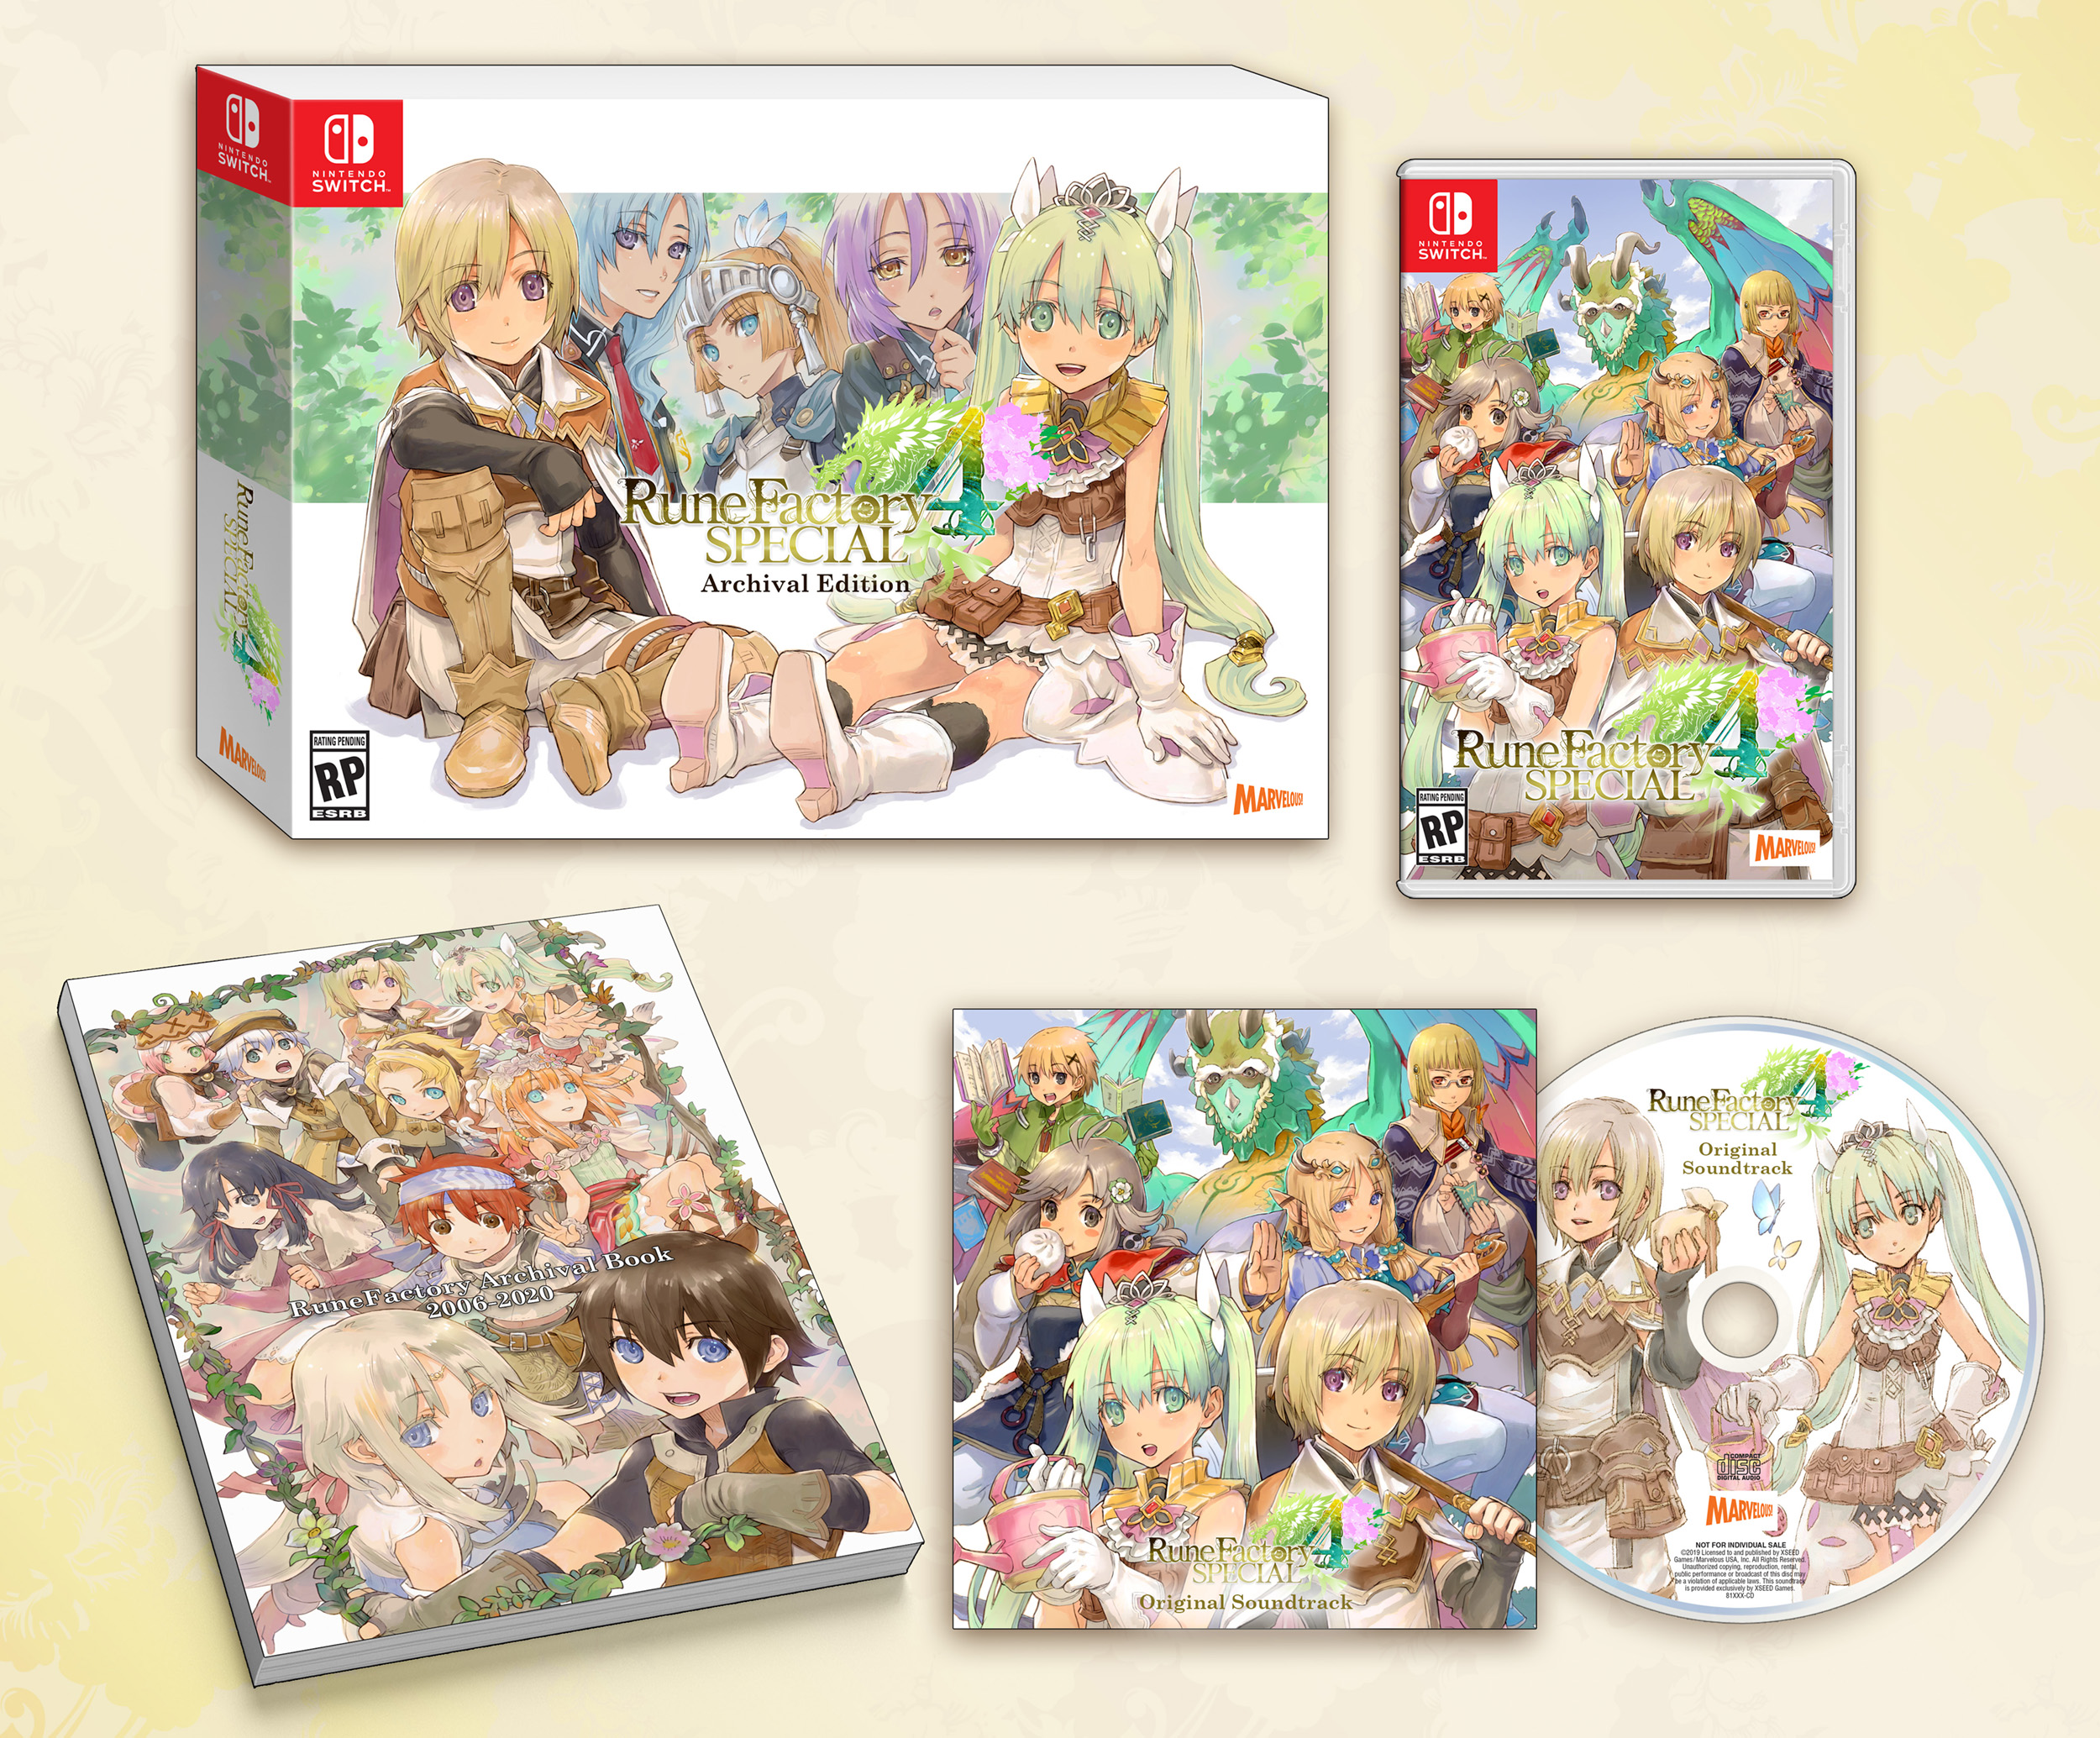 Rune-Factory-4-Special-Archival-Edition_